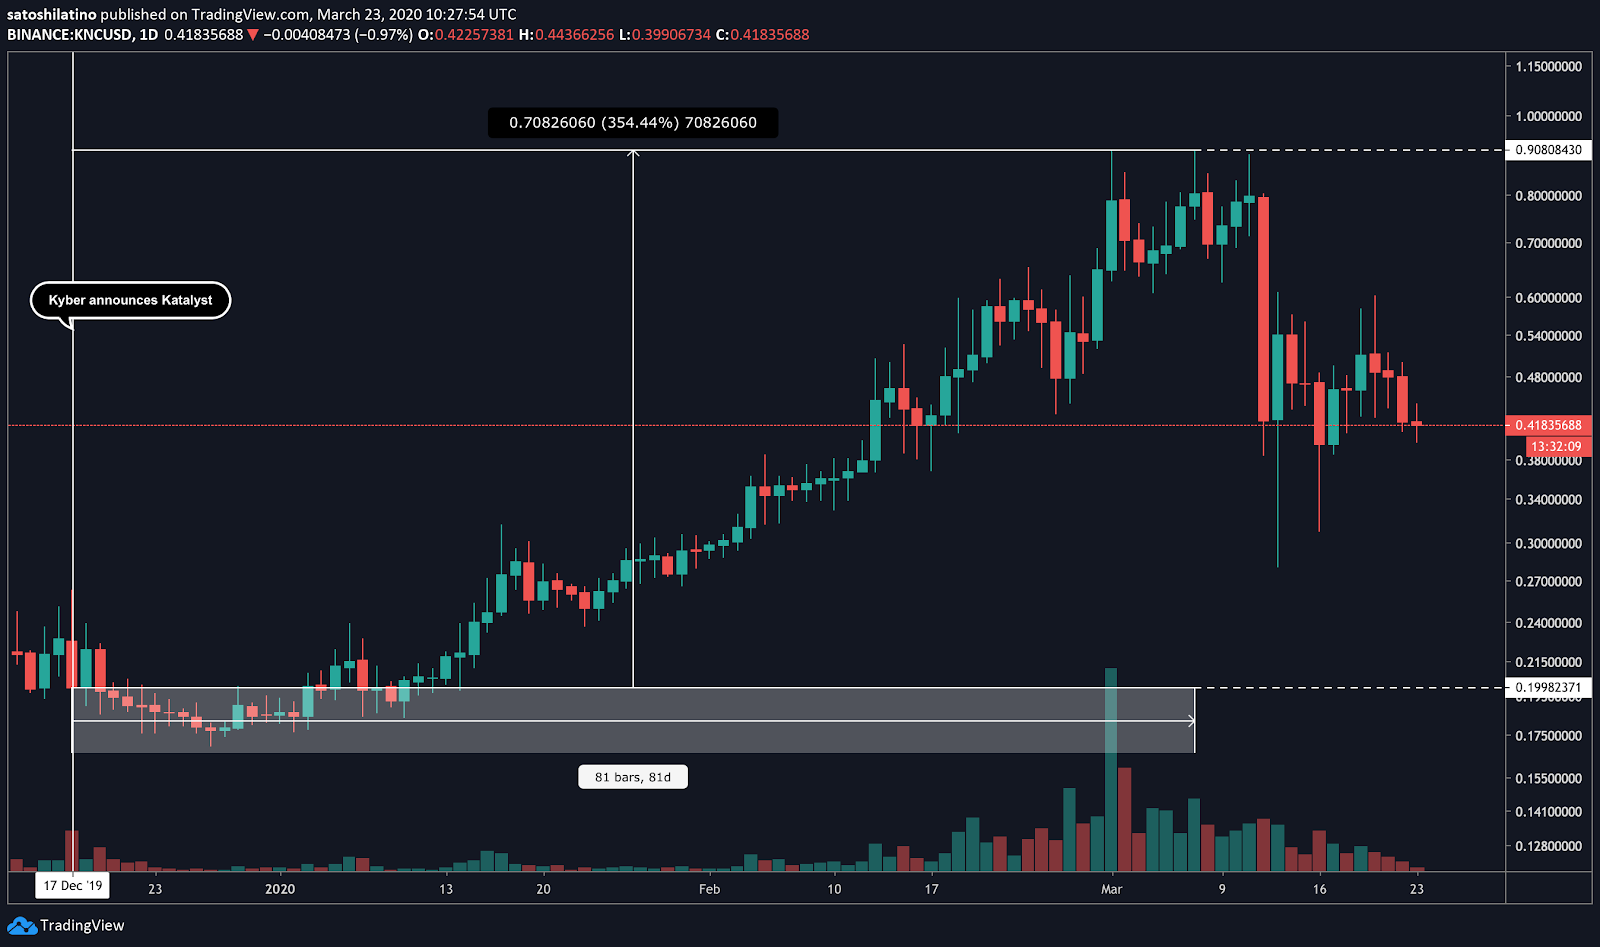 Kyber / US dollars price chart on TradingView